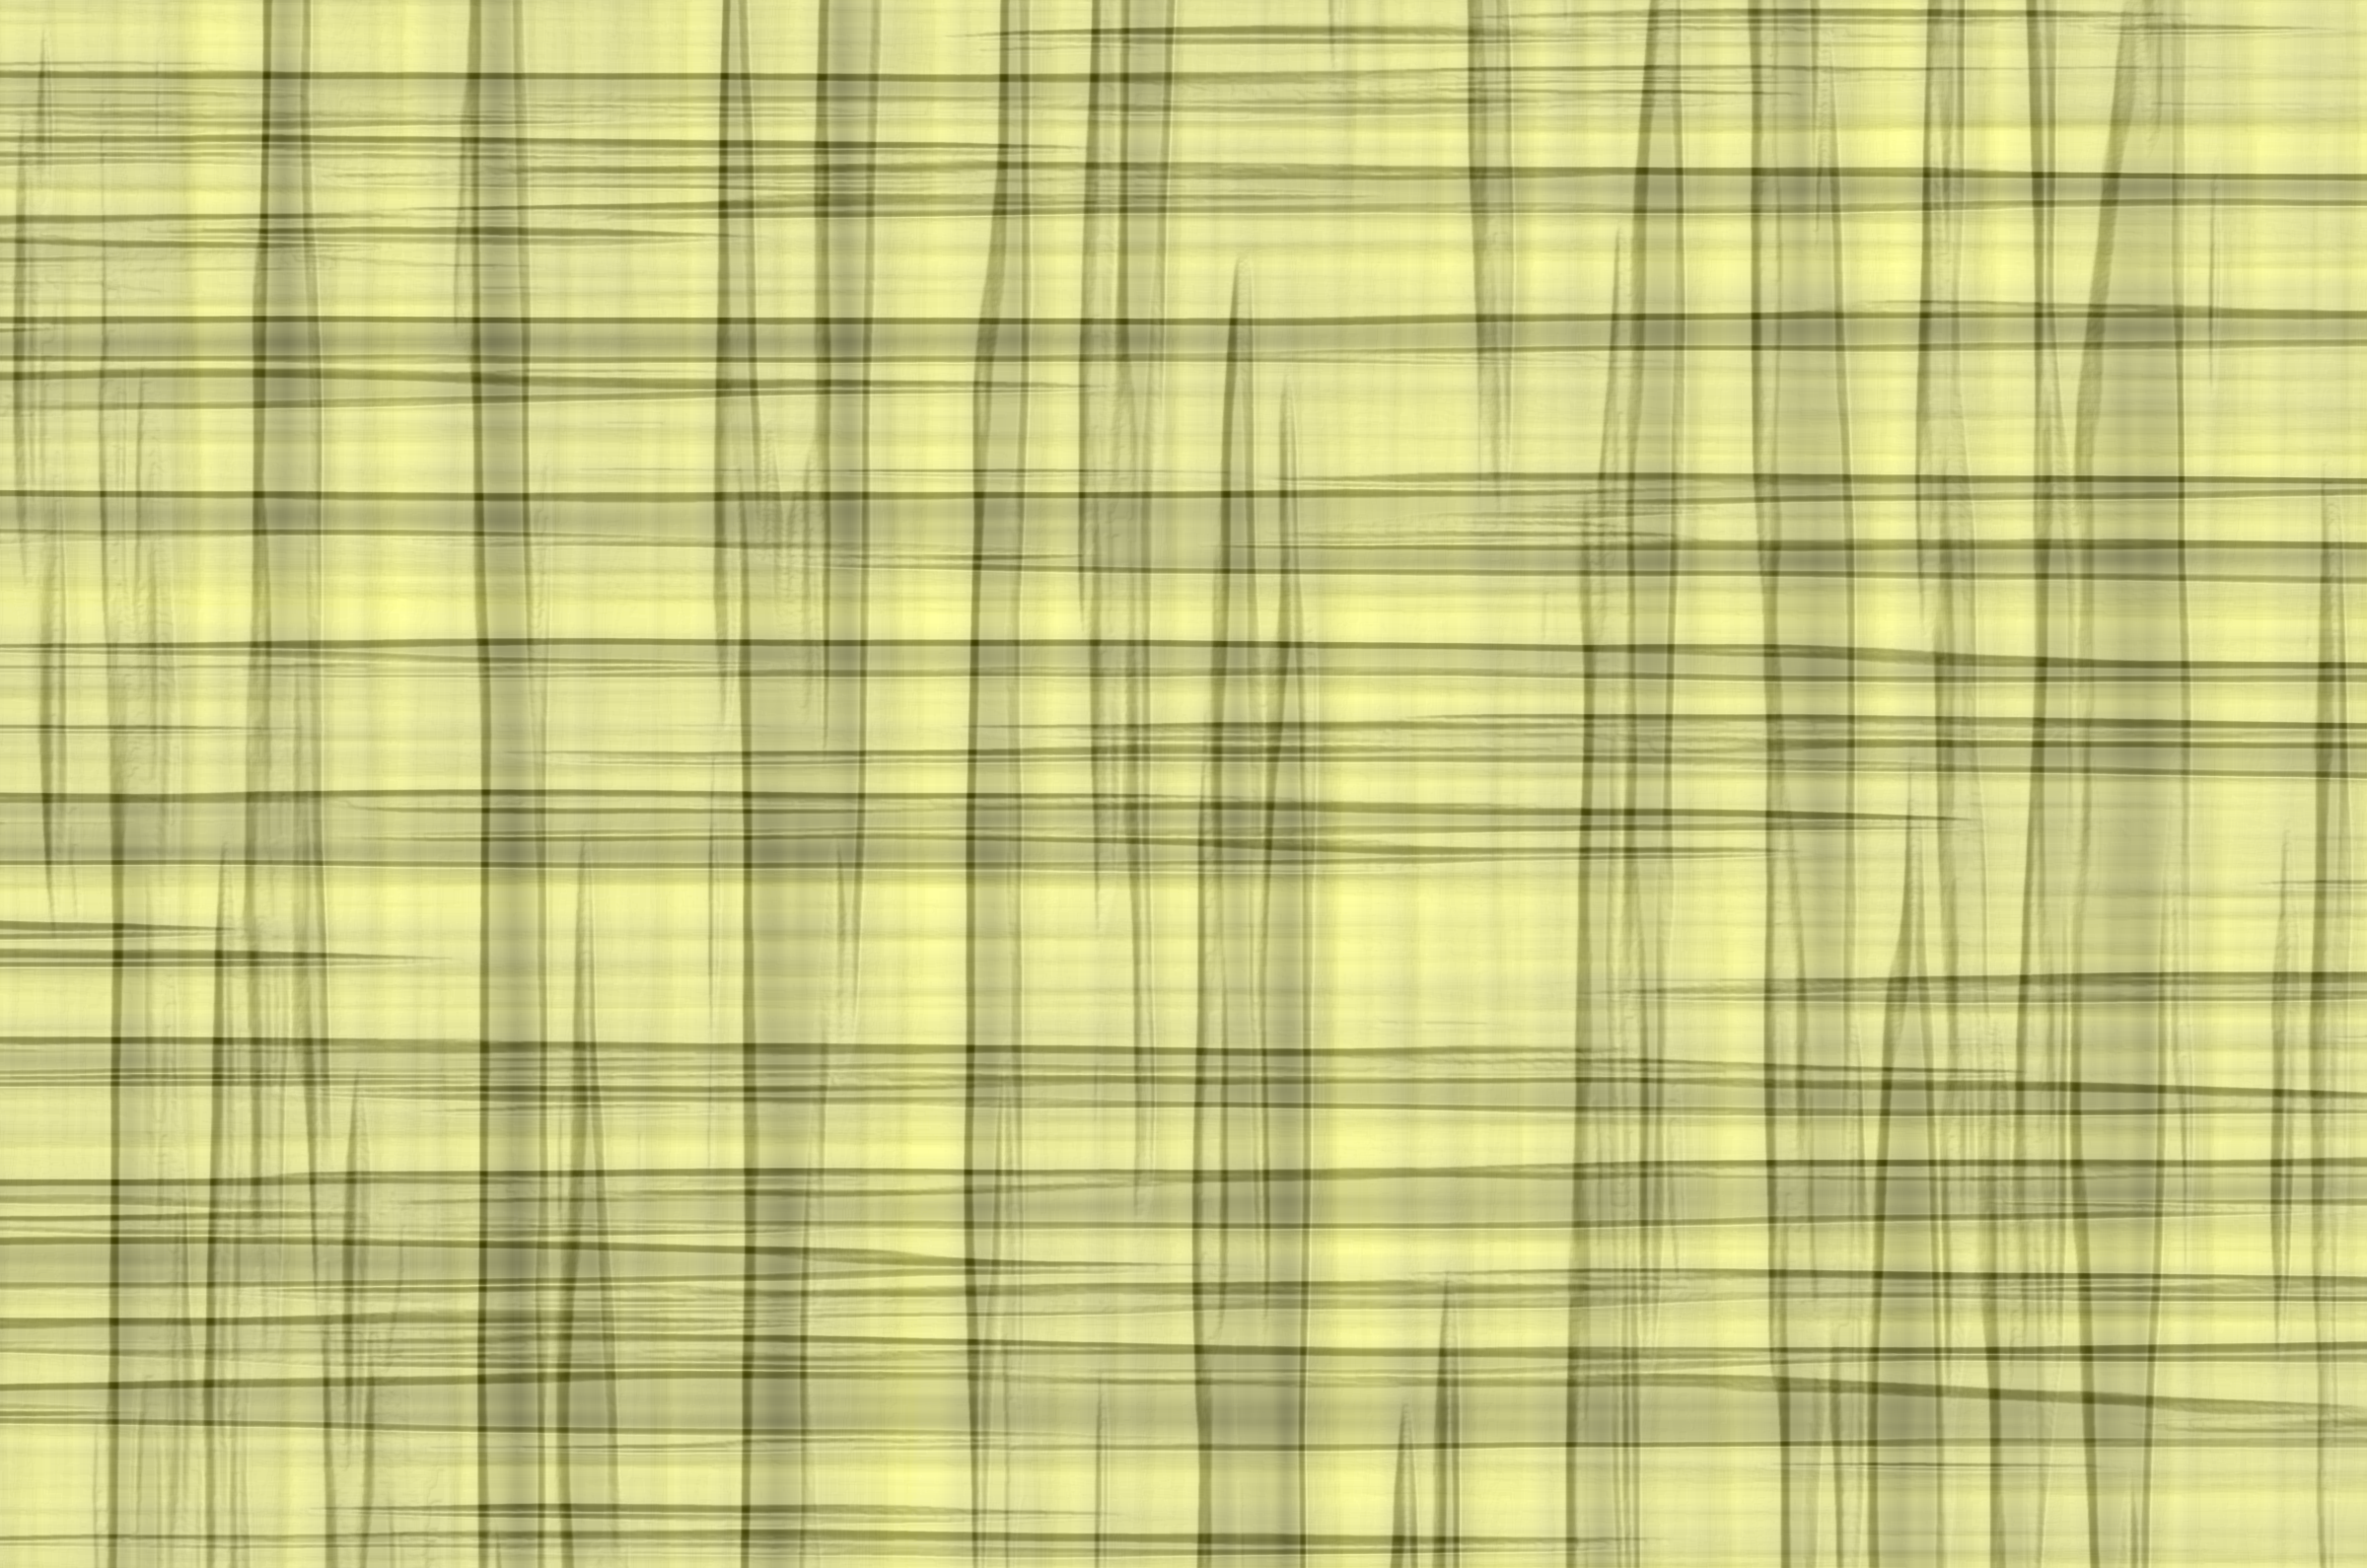 Background pattern 237 (colour 4) by Firkin